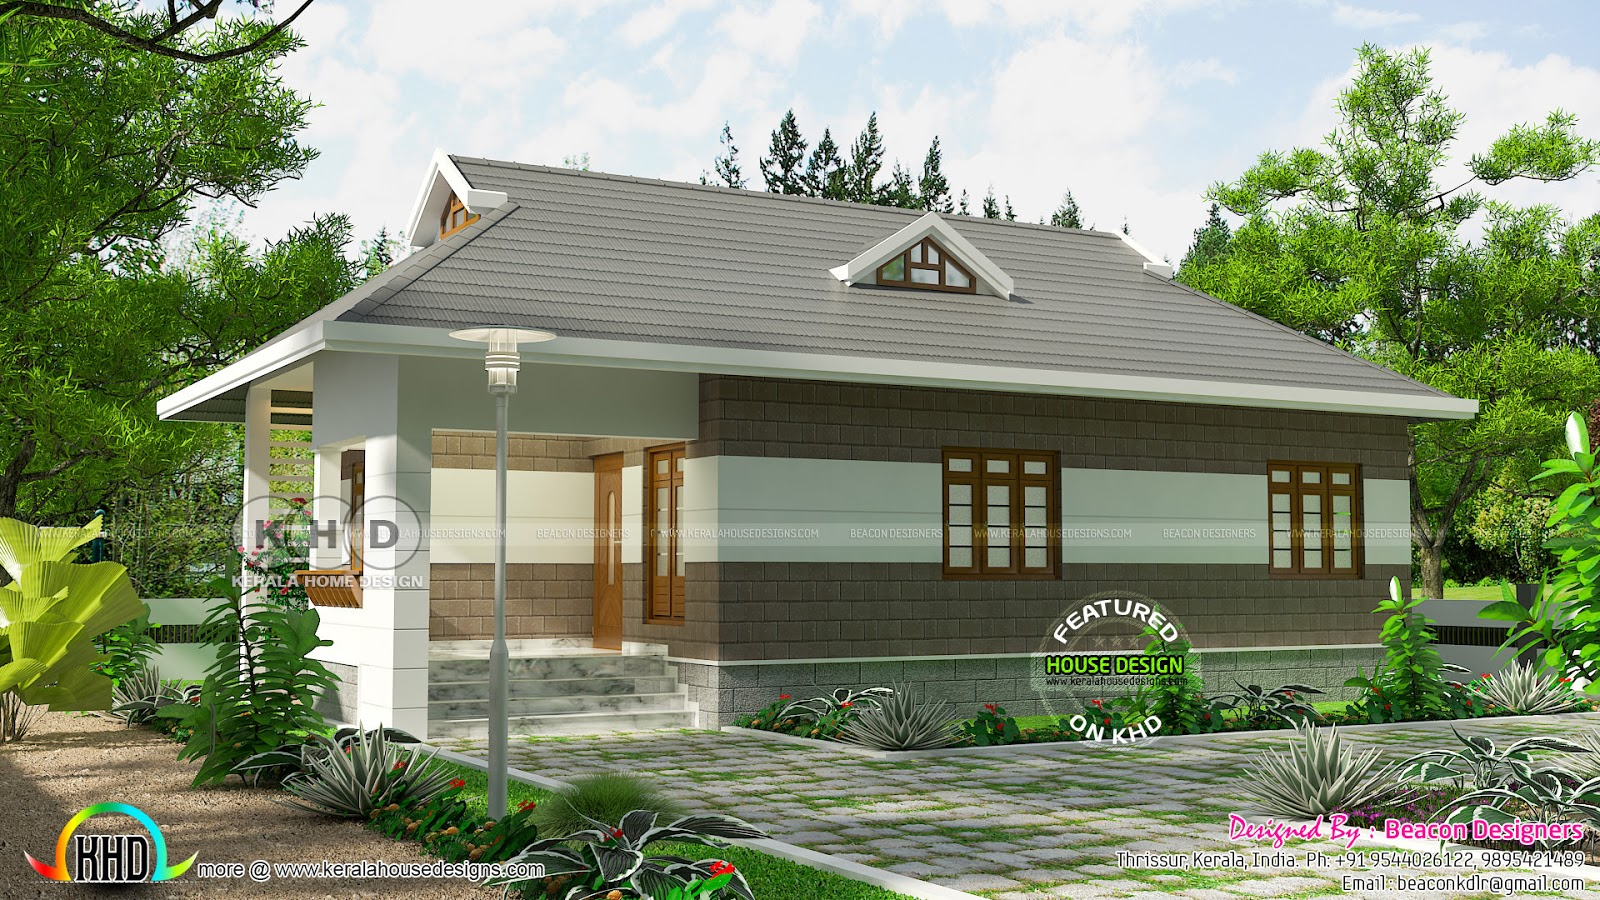 3 Bedroom Low Cost House Plan Kerala Home Design And Floor